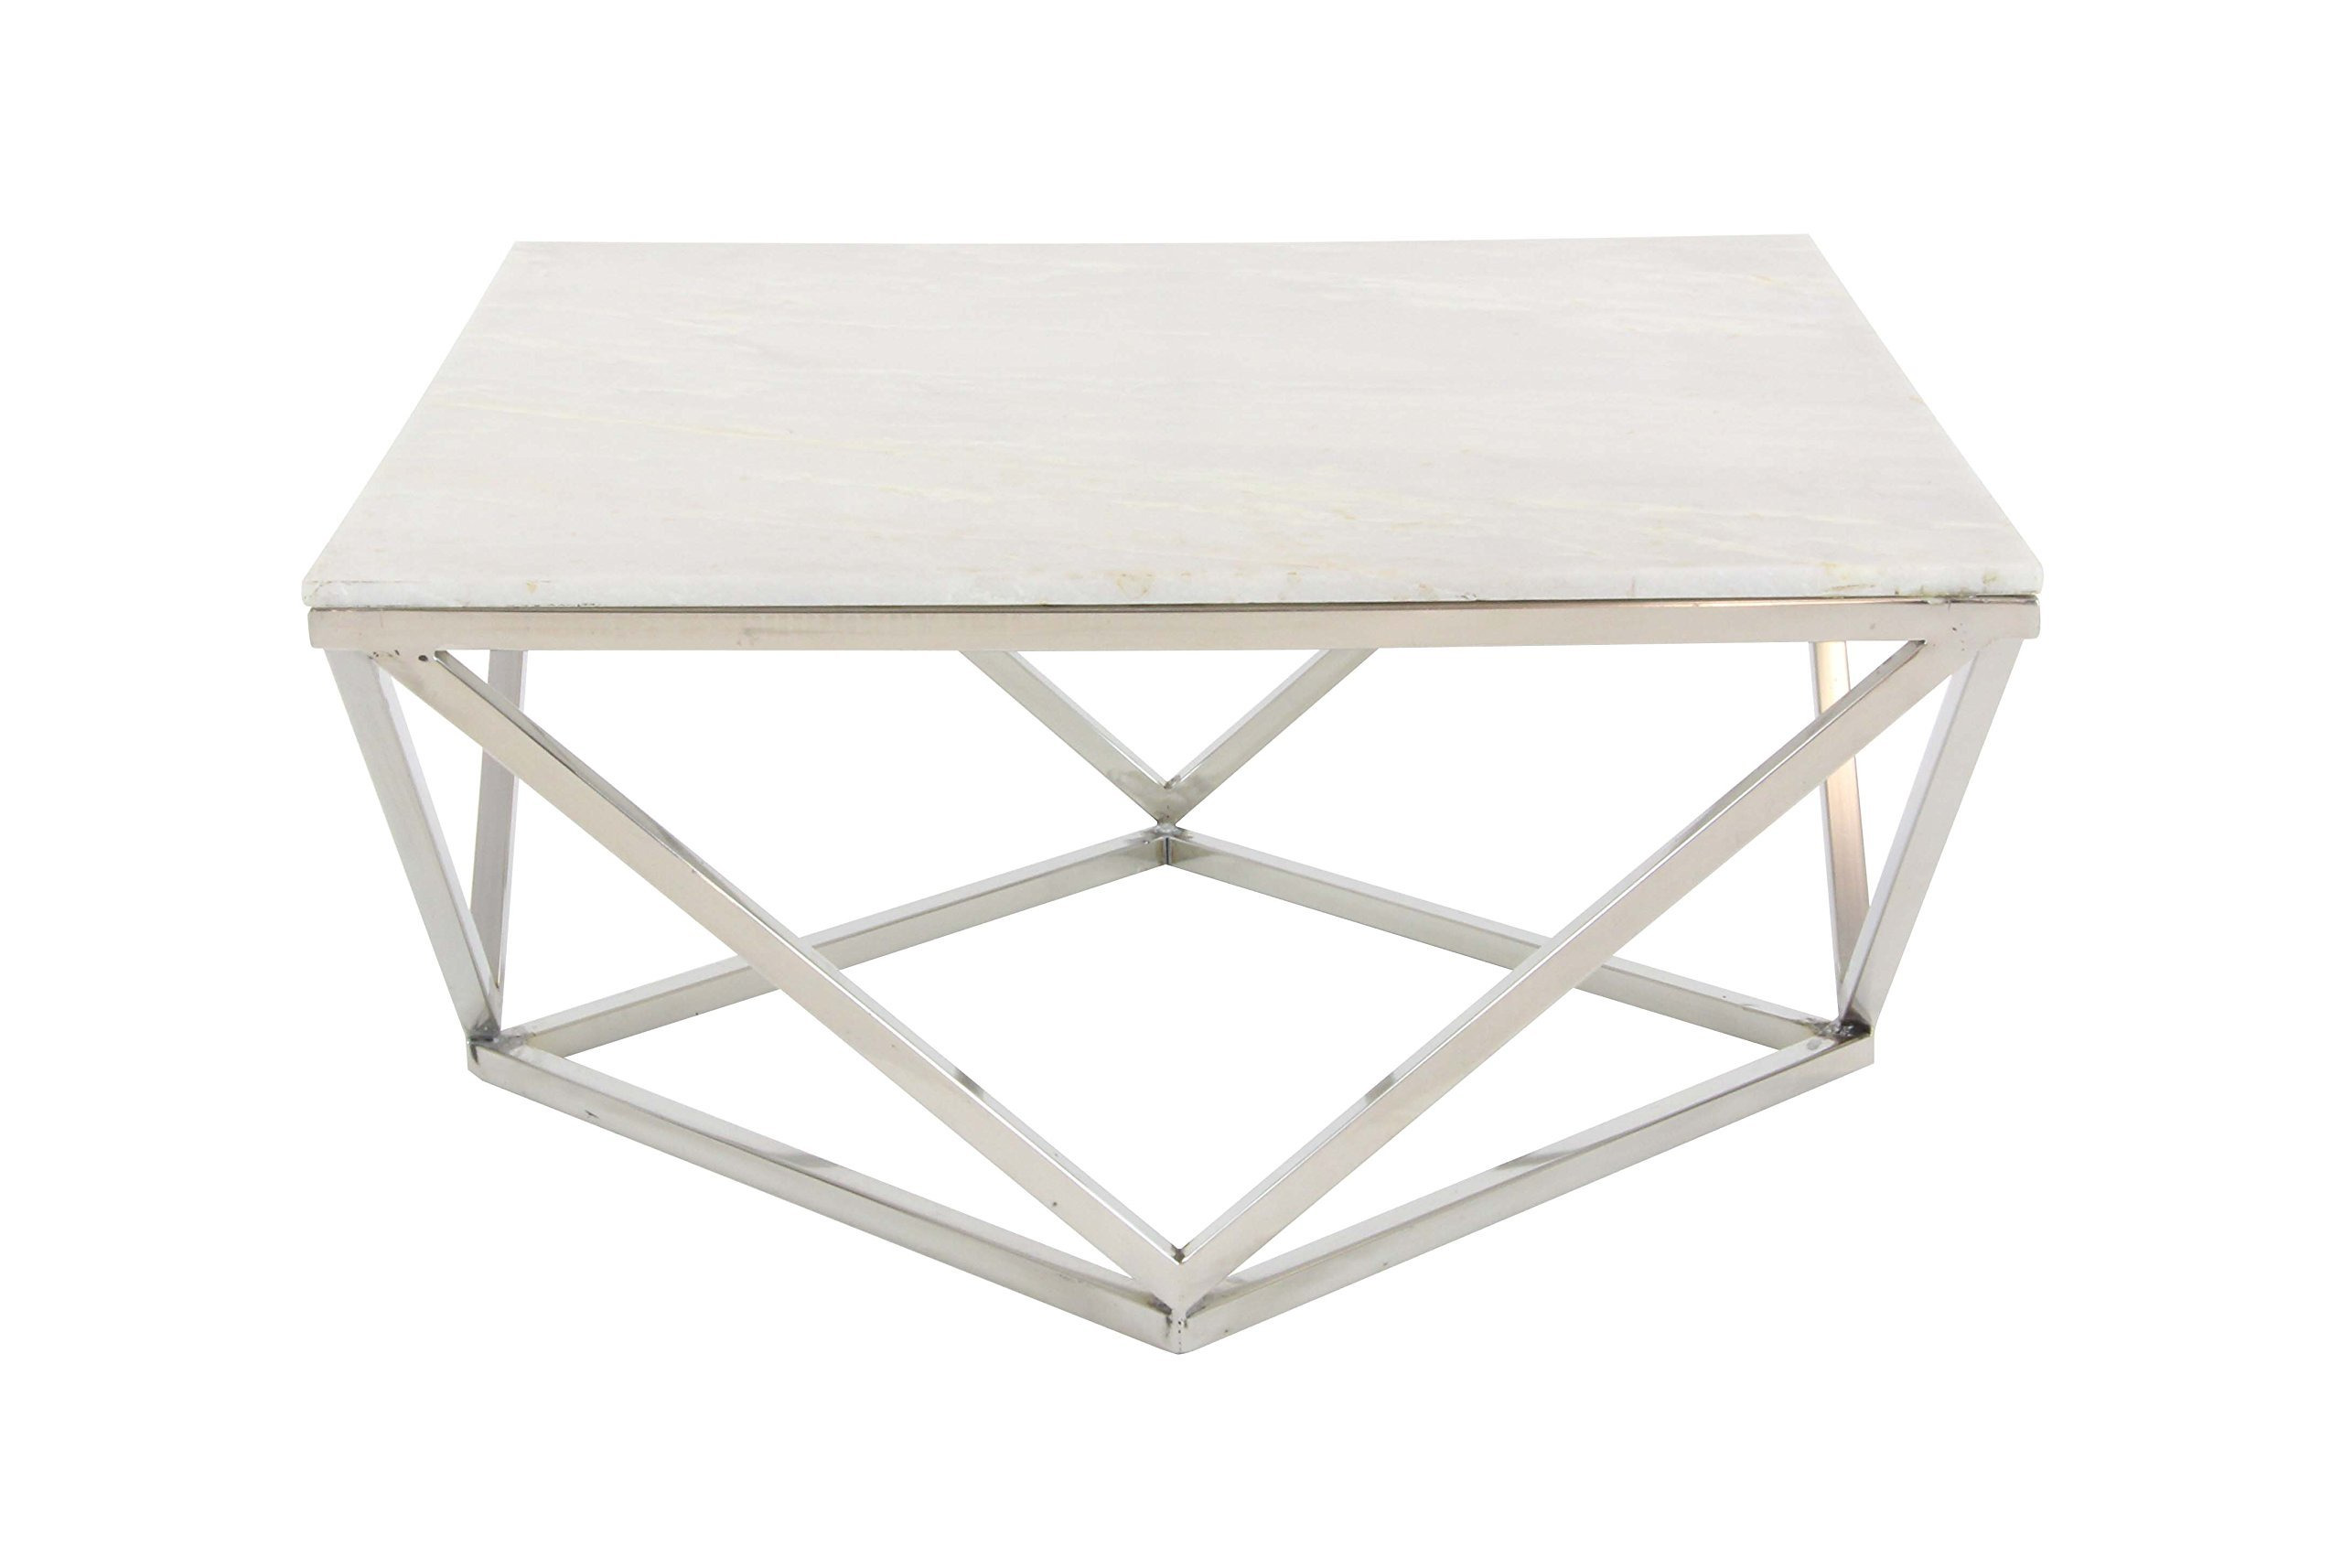 "Deco 79 Square White Marble Coffee Table with Silver Stainless Steel Modern Geometric Base, 29"" - UNIQUE MODERN STYLE: White square marble coffee table with geometric base MARBLE & METALLICS: Solid white marble tabletop on a silver stainless steel base BOLD SILHOUETTE: Rich white marble with natural swirling dimension and texture cut into a square table top with a dimensional modern geometric base with a polished silver metal finish - living-room-furniture, living-room, coffee-tables - 712Ii9A71IL -"